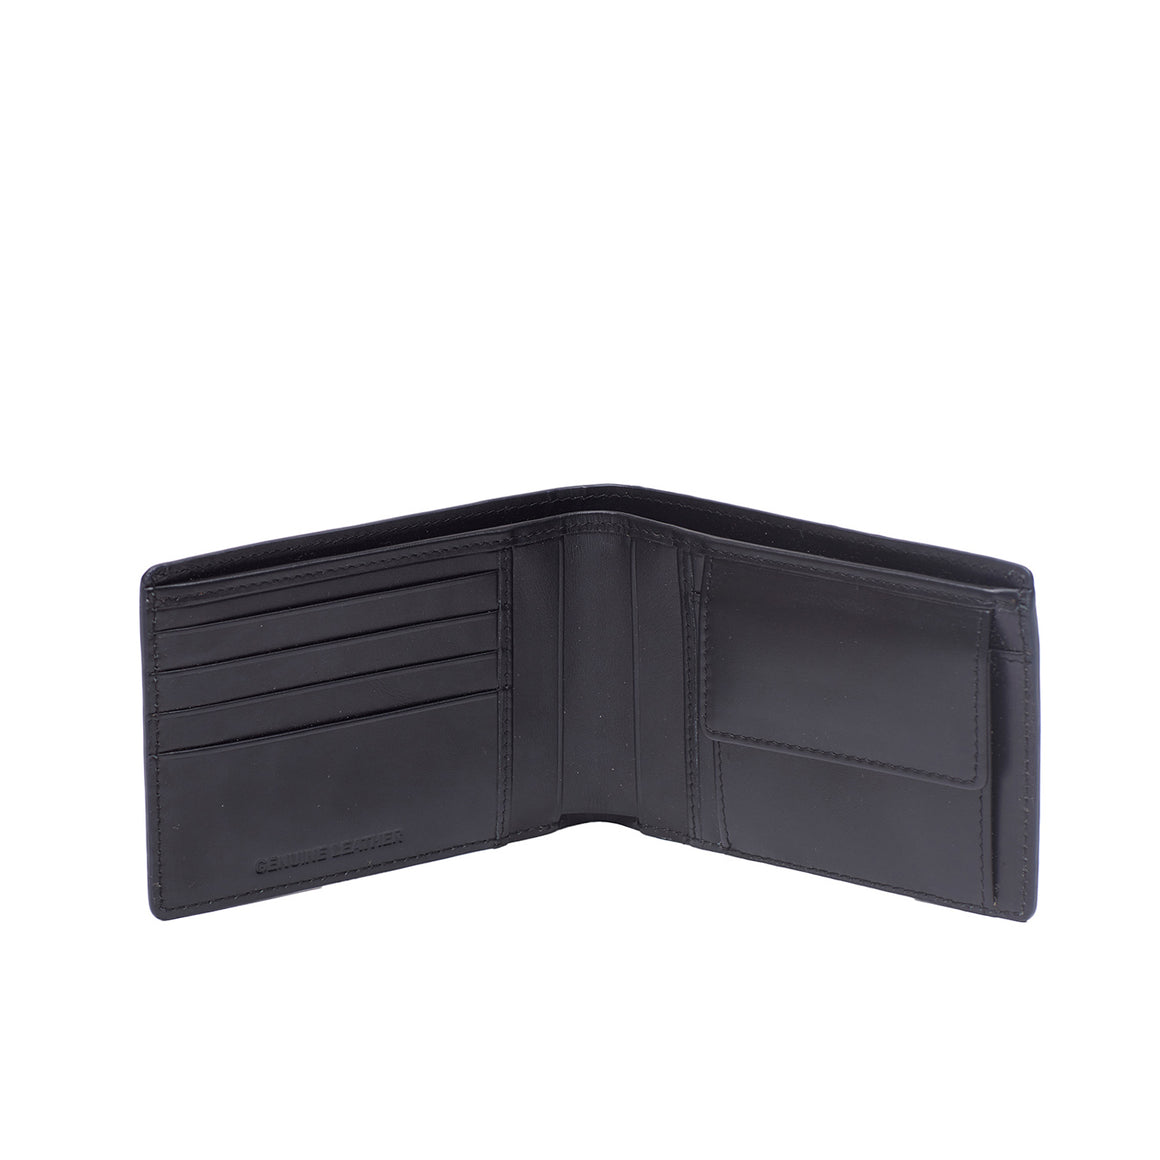 WT 0039 - TOHL AMATA MEN'S WALLET - CHARCOAL BLACK